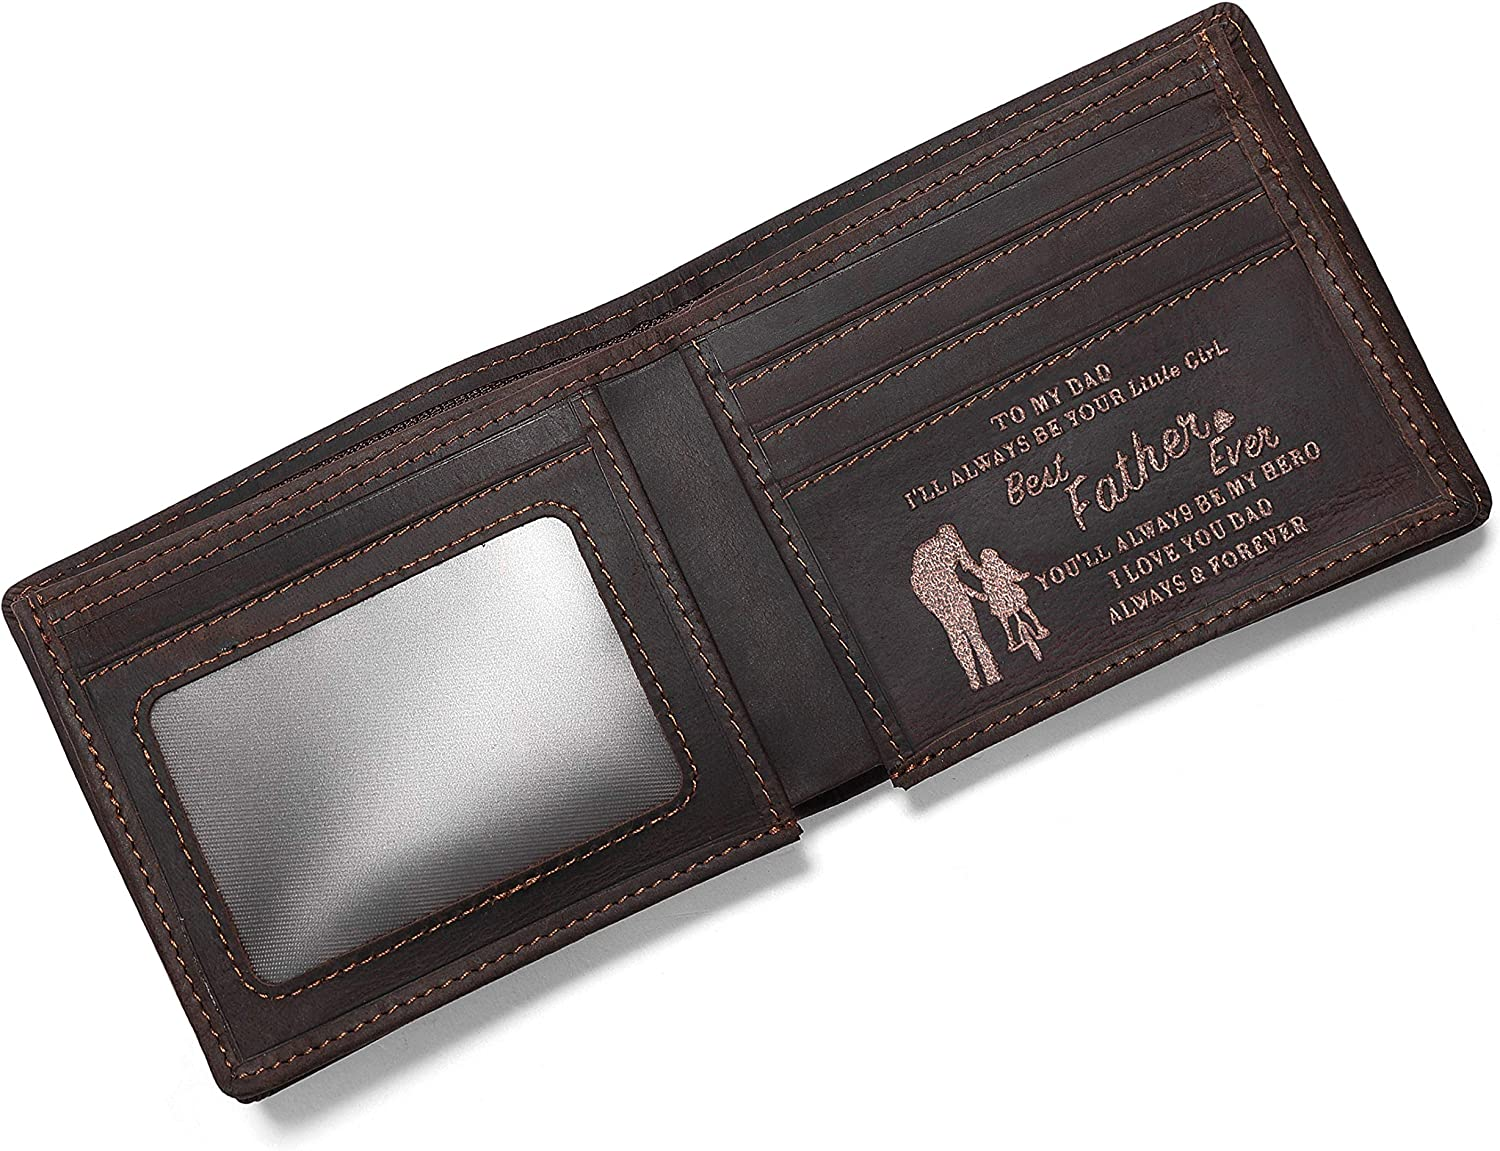 Personalized Engraved Leather Wallet for Dad from Daughter - Perfect for Birthday Fathers Day Thanksgiving Christmas - I Love You - Mens Custom Bifold Wallets for Him with Romatic Message